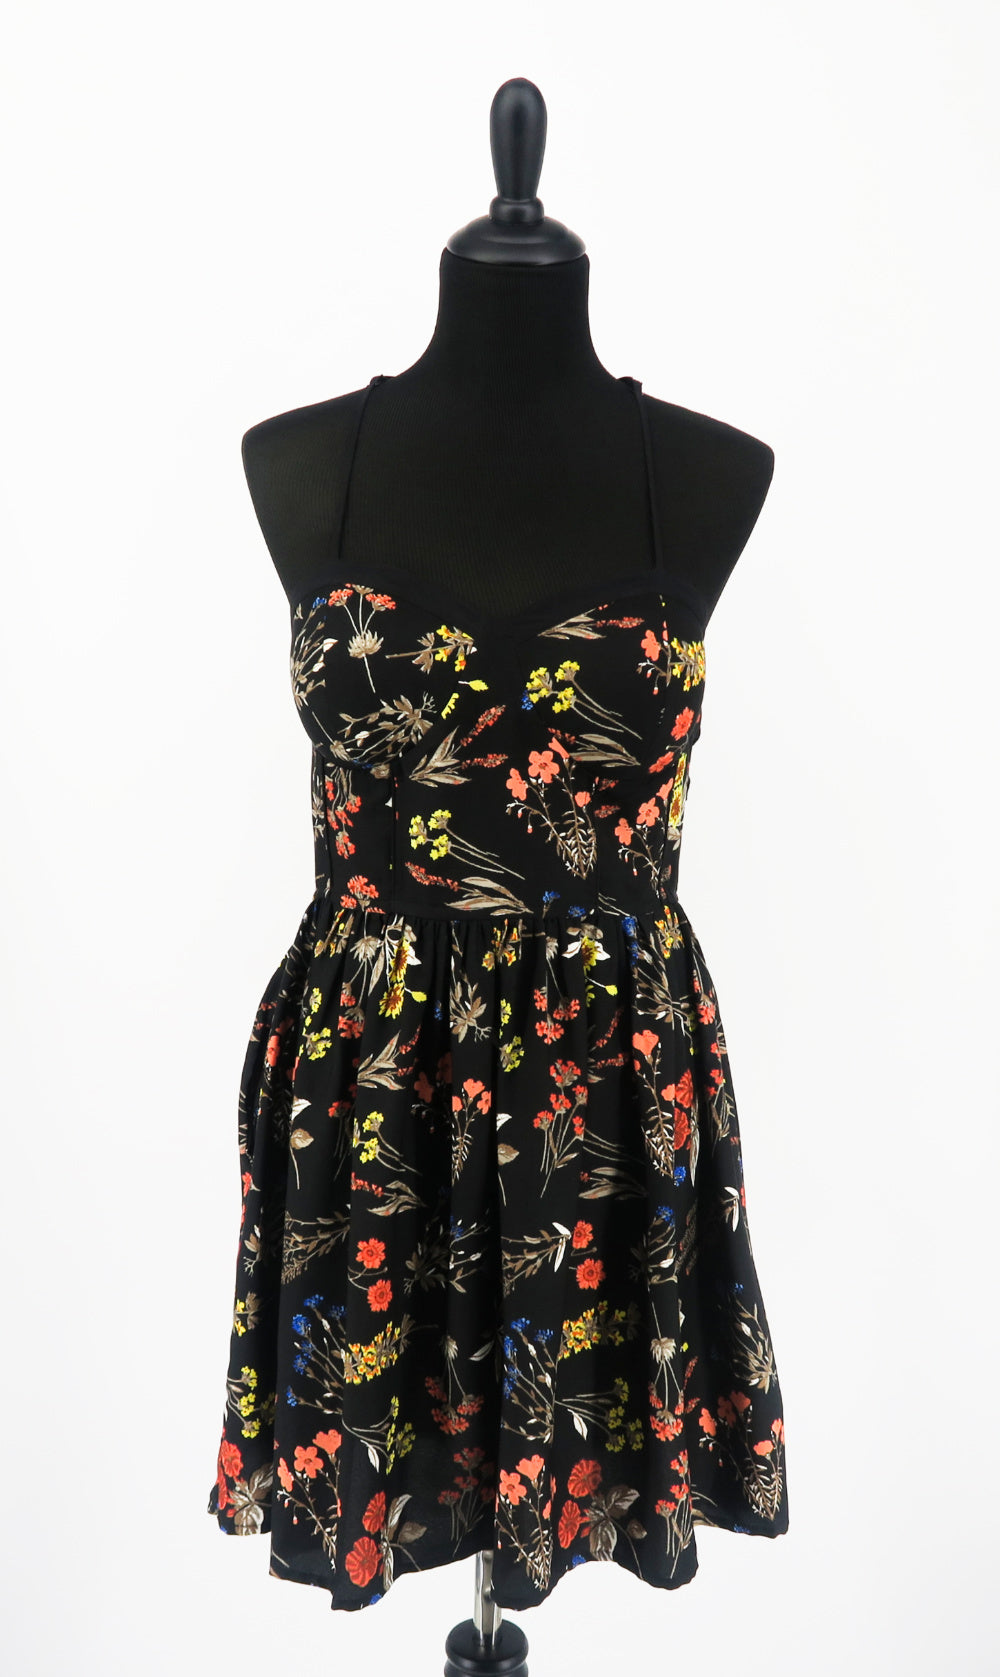 American Rag Flower Dress - Sachy's Closet